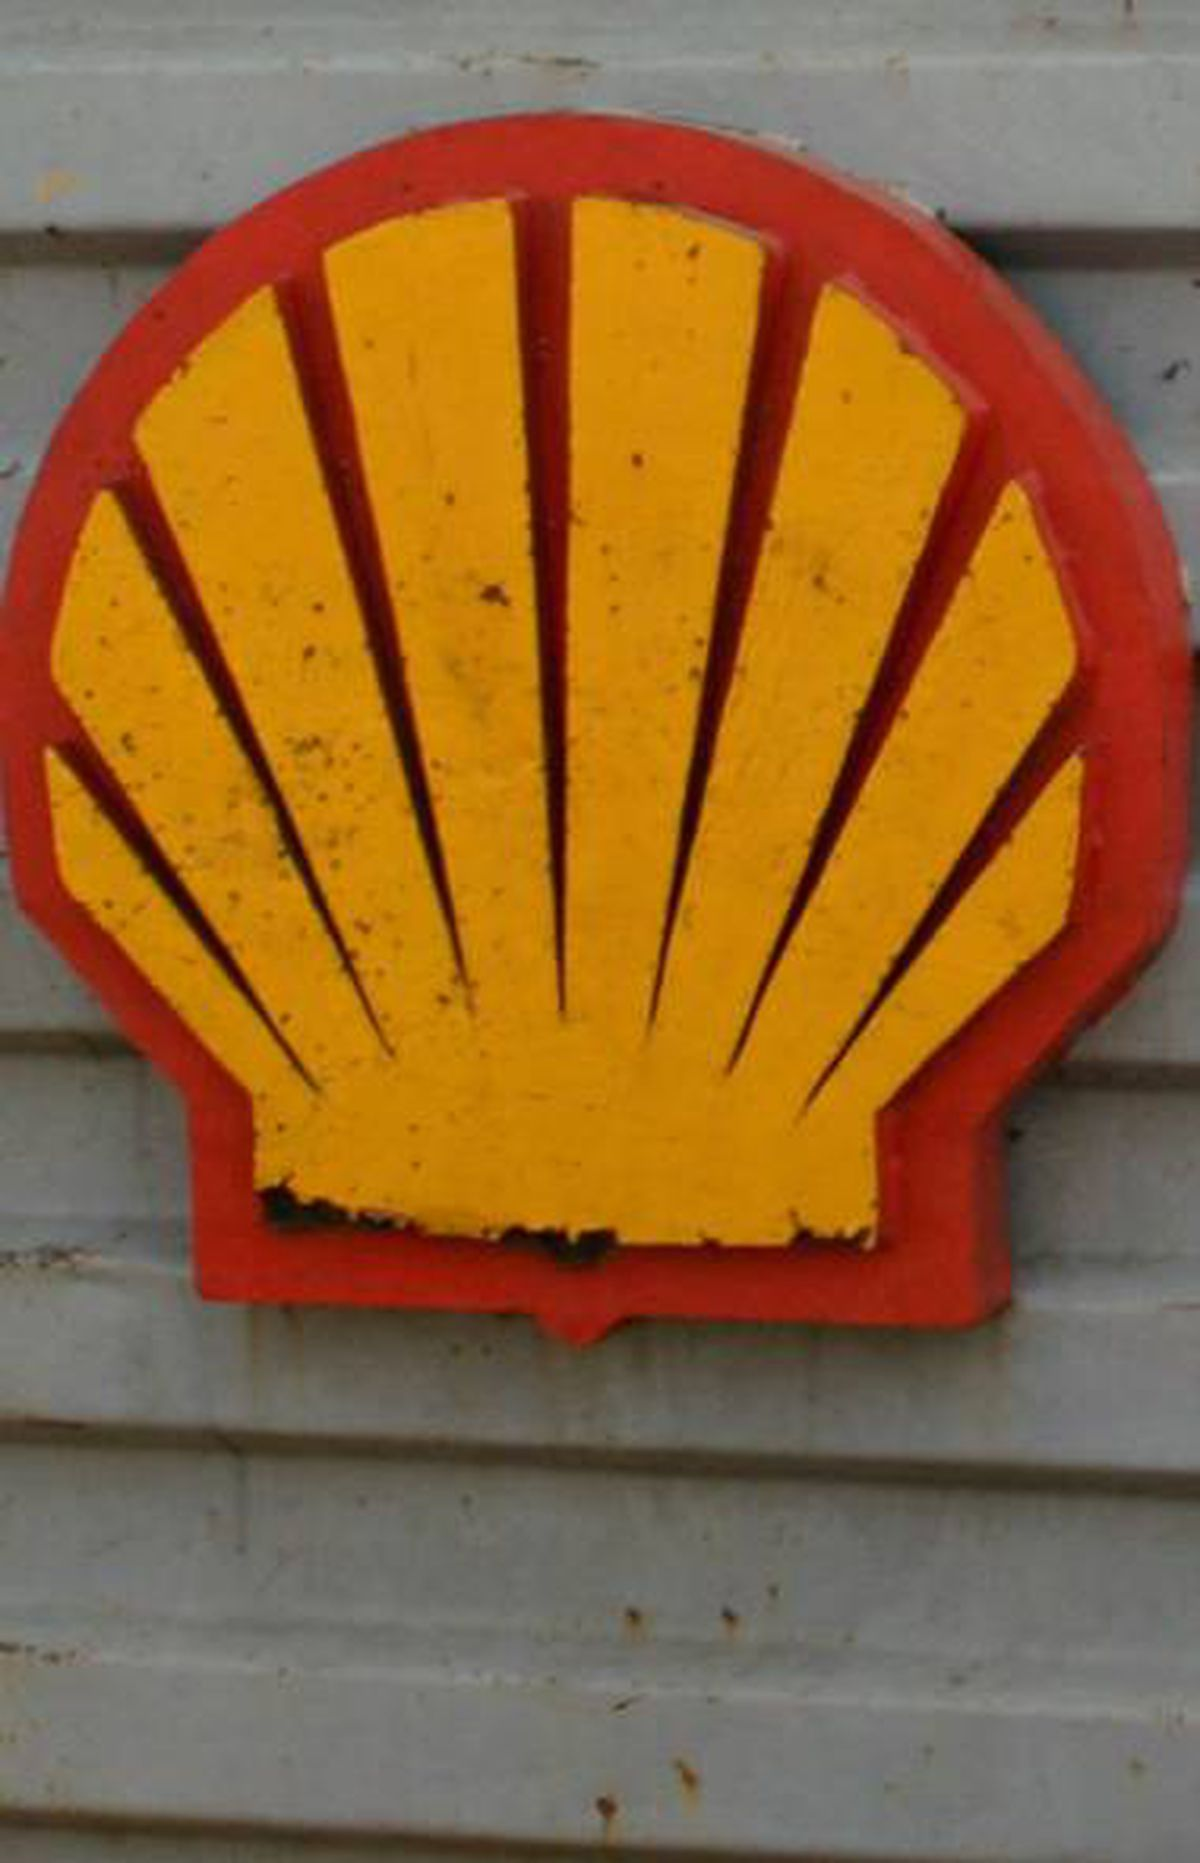 """NIGERIA: Royal Dutch Shell had infiltrated key Nigerian ministries, giving it access to politicians' every move in the oil-rich nation, the Guardian said, citing leaked U.S. diplomatic cables. The oil giant's top executive in Nigeria, Ann Pickard, told U.S. diplomats in Abuja in October, 2009, that Shell had obtained secret information, including a letter showing Nigeria had invited bids for oil concessions from China. """"She said the GON (government of Nigeria) had forgotten that Shell had seconded people to all the relevant ministries and that Shell consequently had access to everything that was being done in those ministries,"""" U.S. Ambassador Robin Renee Sanders was quoted as saying. In reaction to the leaked note, Shell said it is """"absolutely untrue"""" that it has infiltrated every Nigerian ministry affecting its operations."""